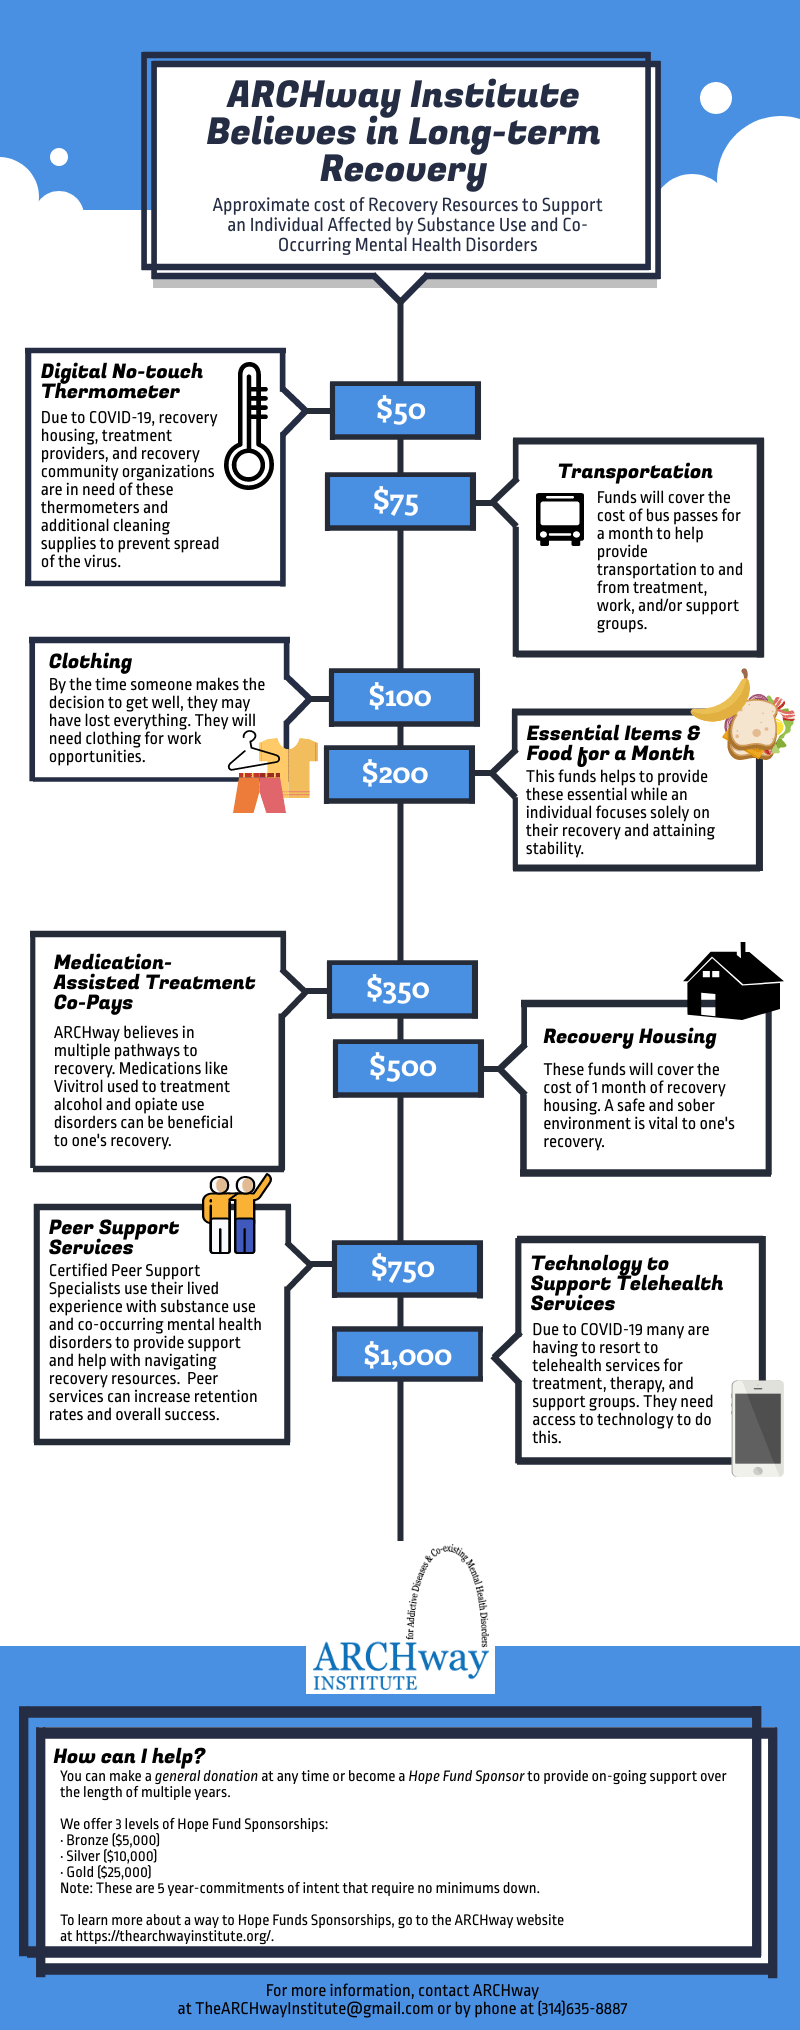 The Cost of Recovery, an ARCHway Institute pictogram